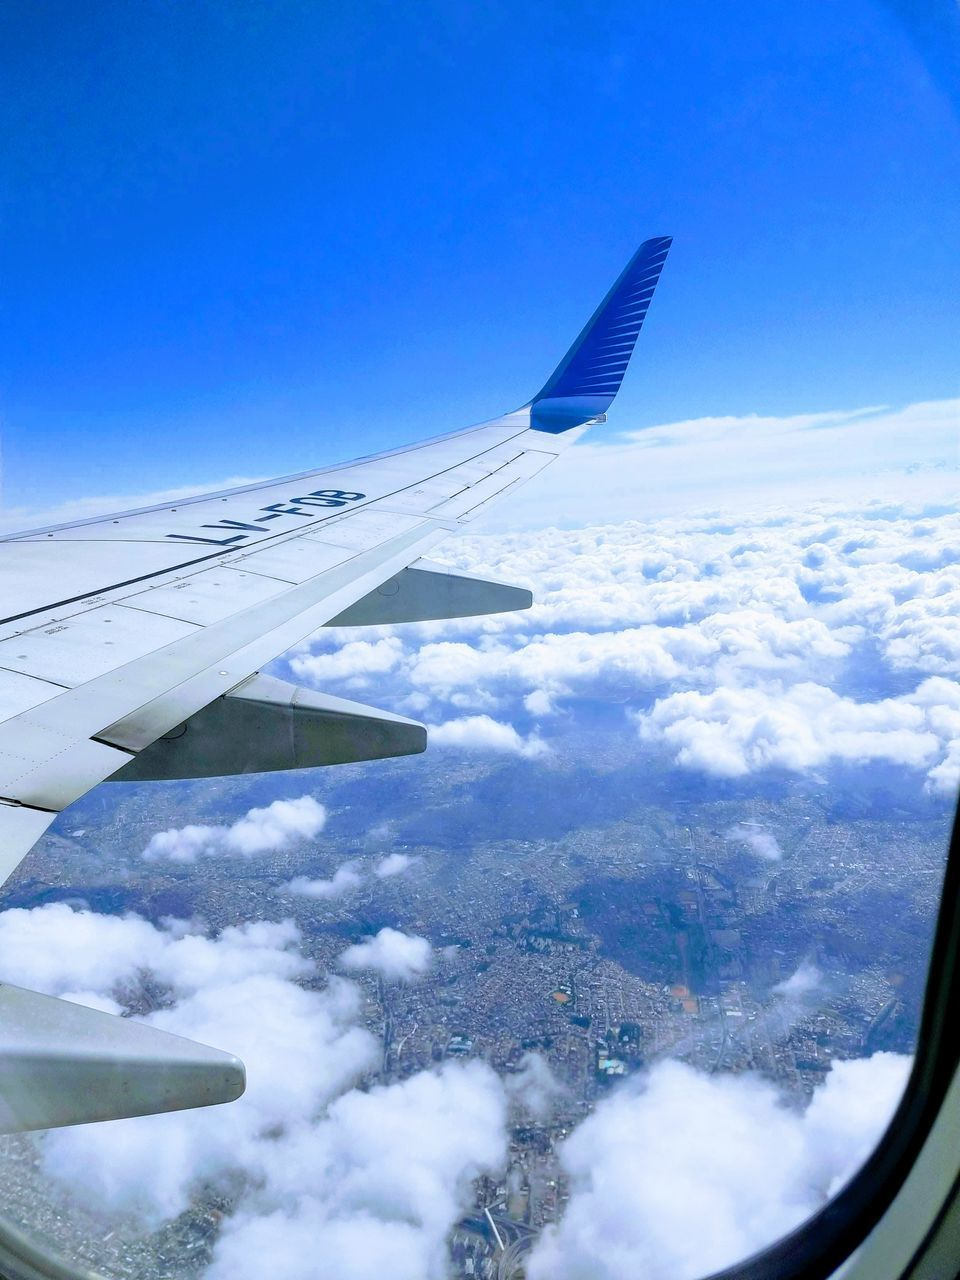 AERIAL VIEW OF AIRPLANE WING OVER CLOUDS